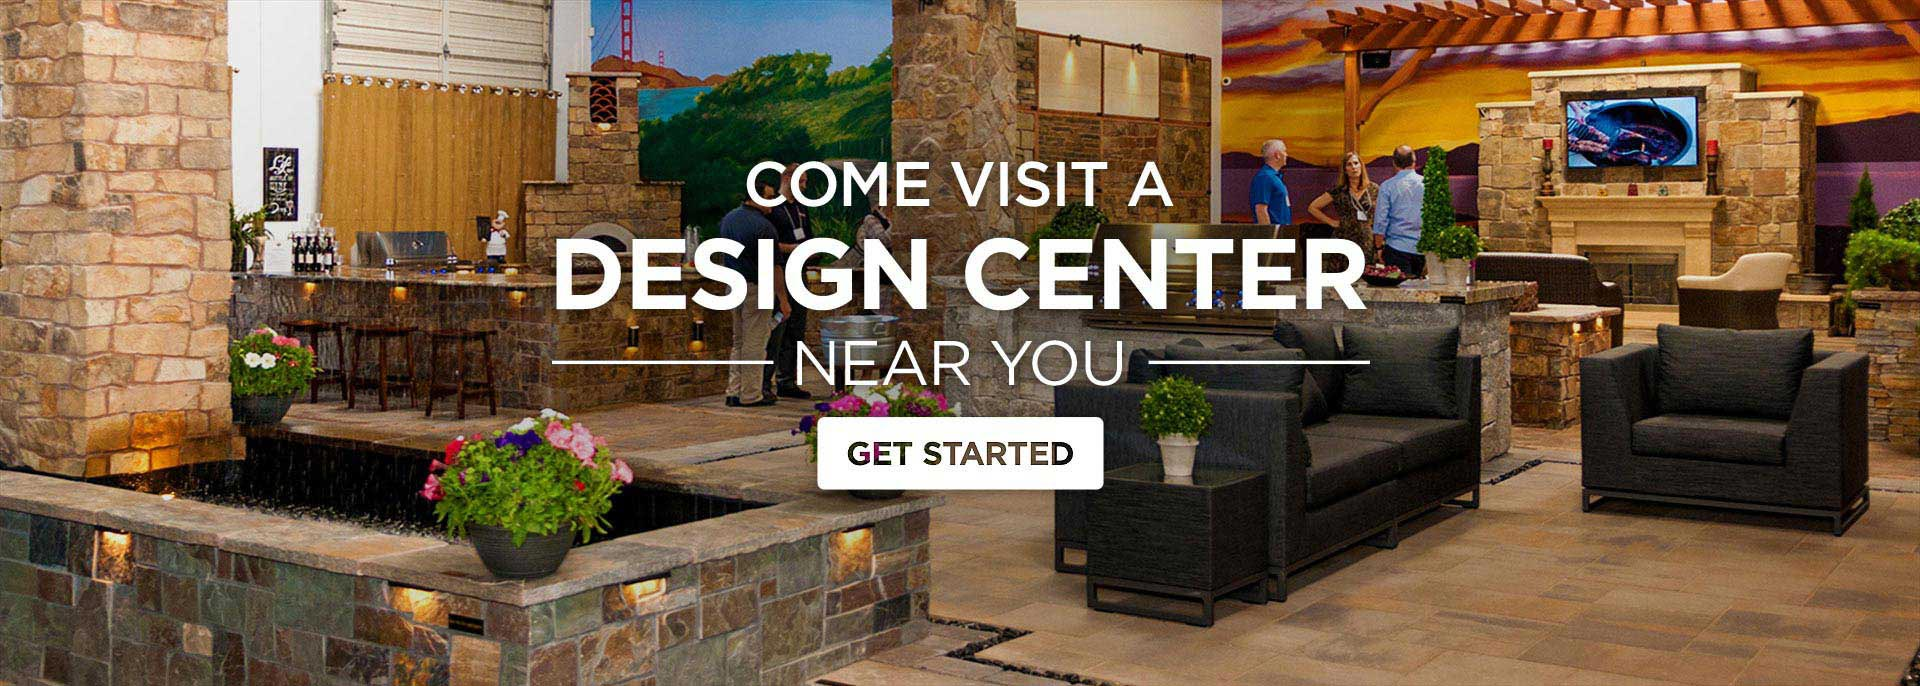 Design Center Near You